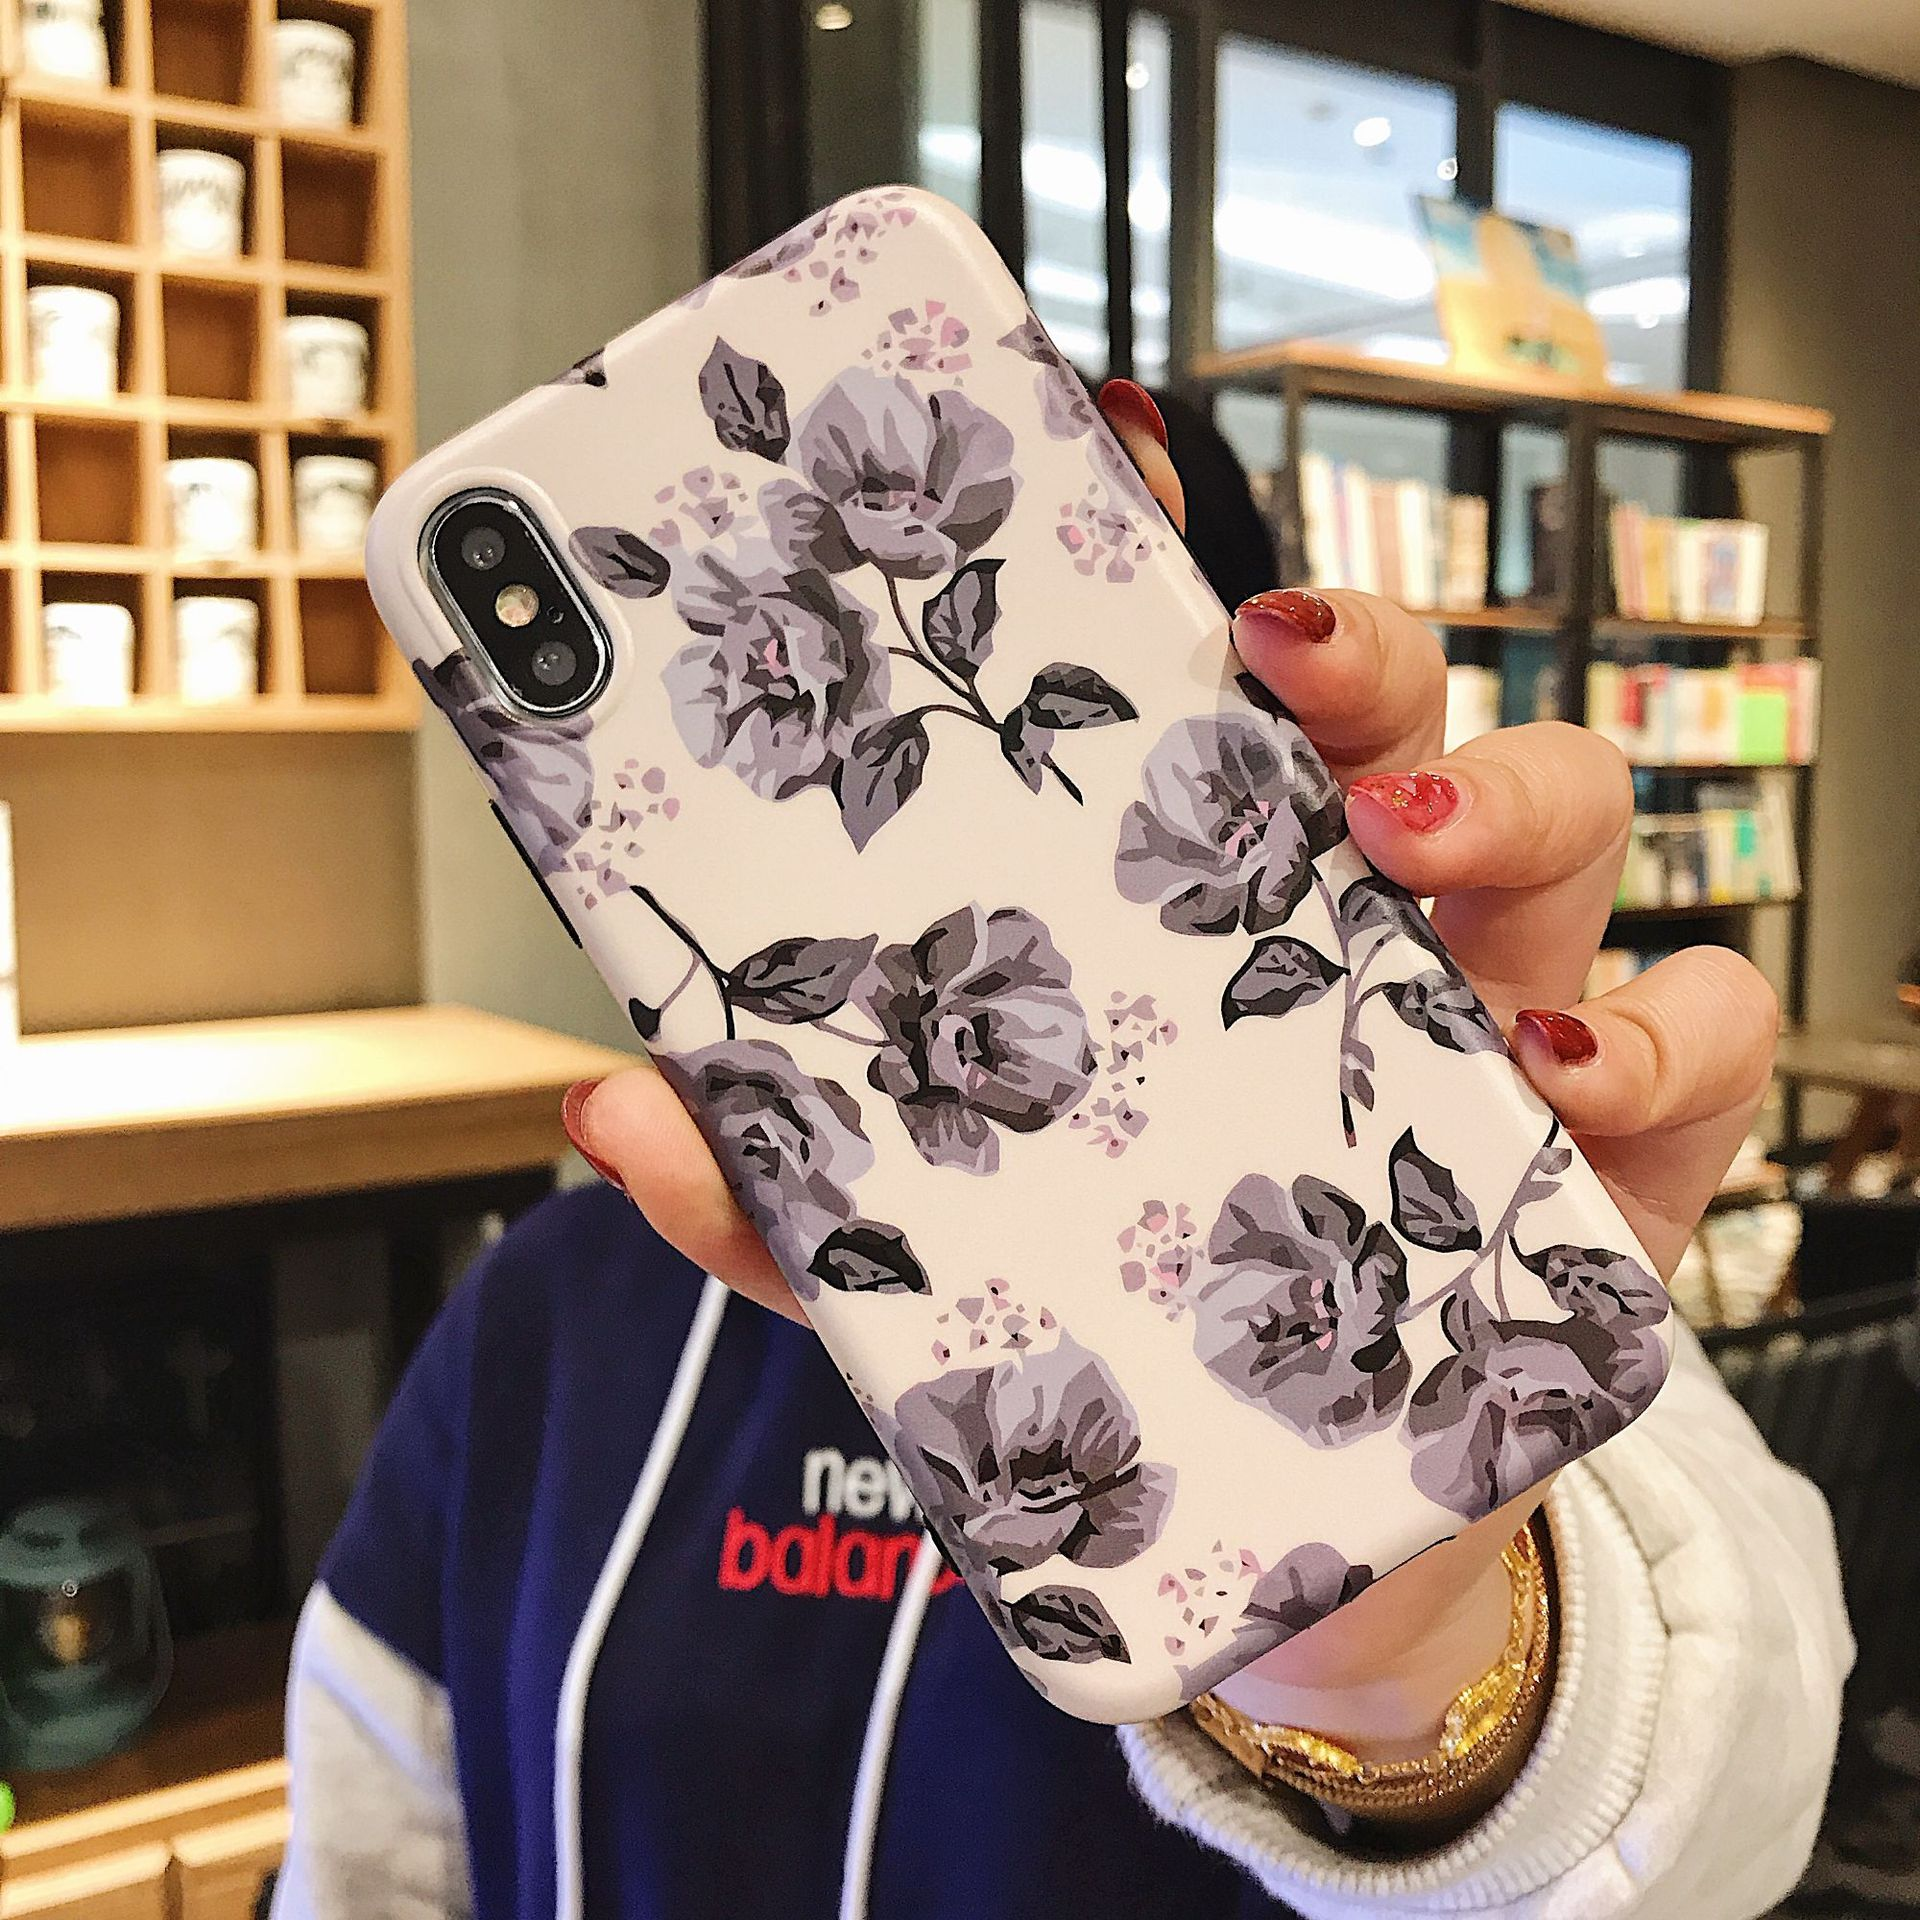 Classic Retro Flower Series Lmd Craft Anti-falling Edge TPU Soft Shell Mobile Phone Protective Cover For Iphone 1